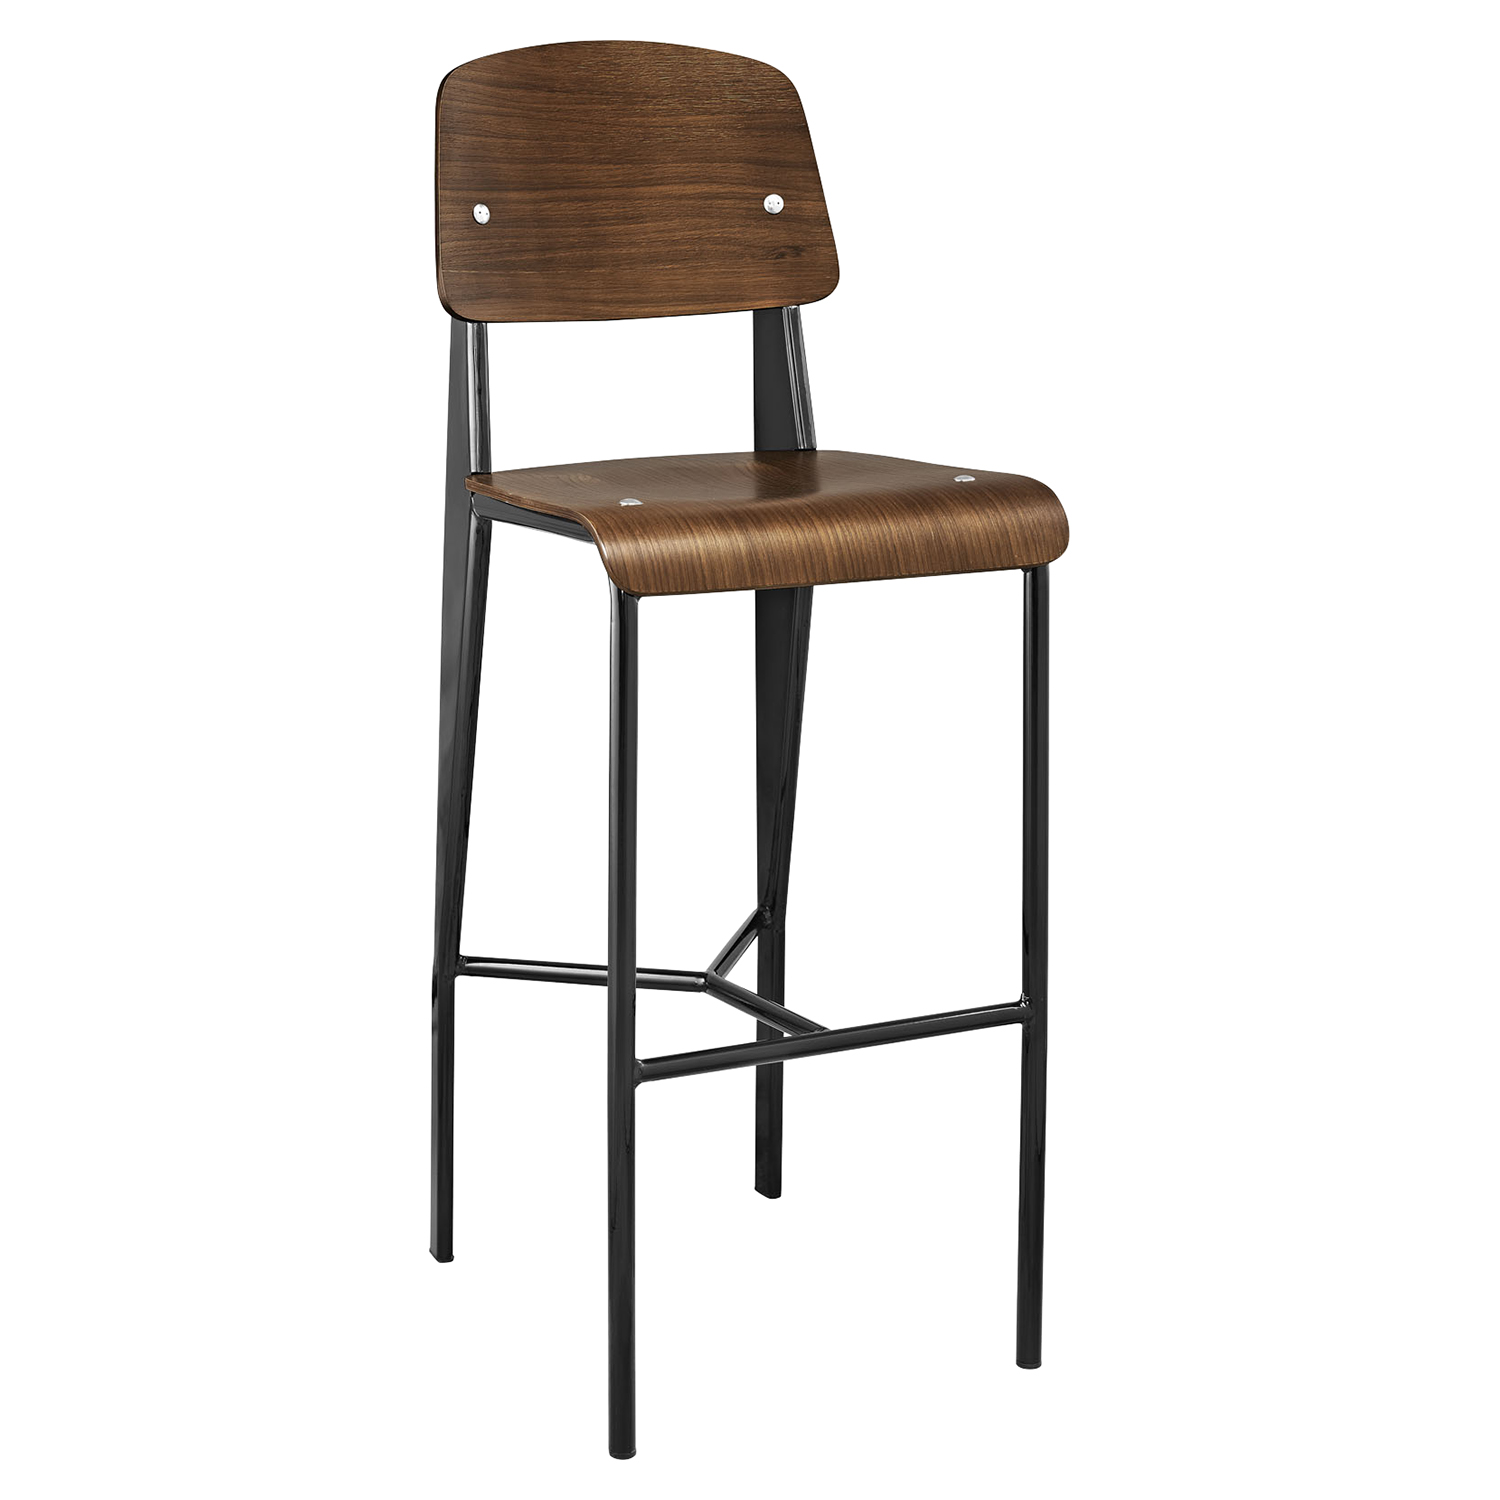 Cabin Armless Bar Stool - Walnut, Black